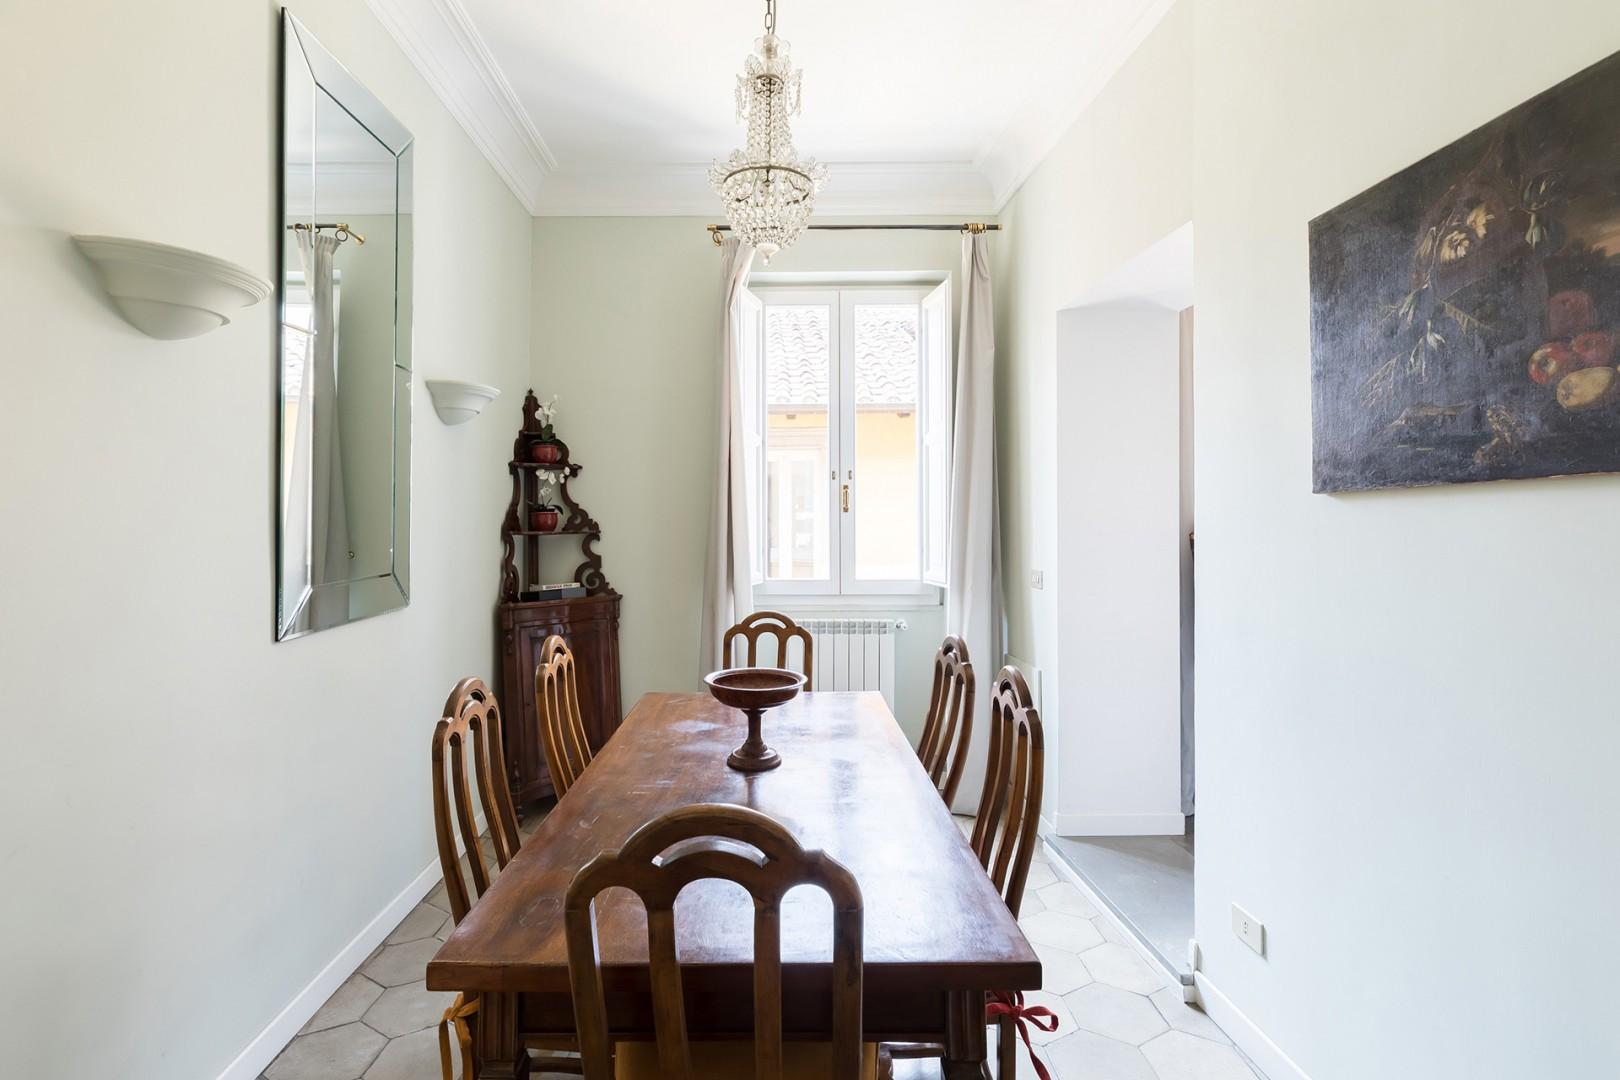 The dining room is separated from the living room, on the right, by a wall with two openings.